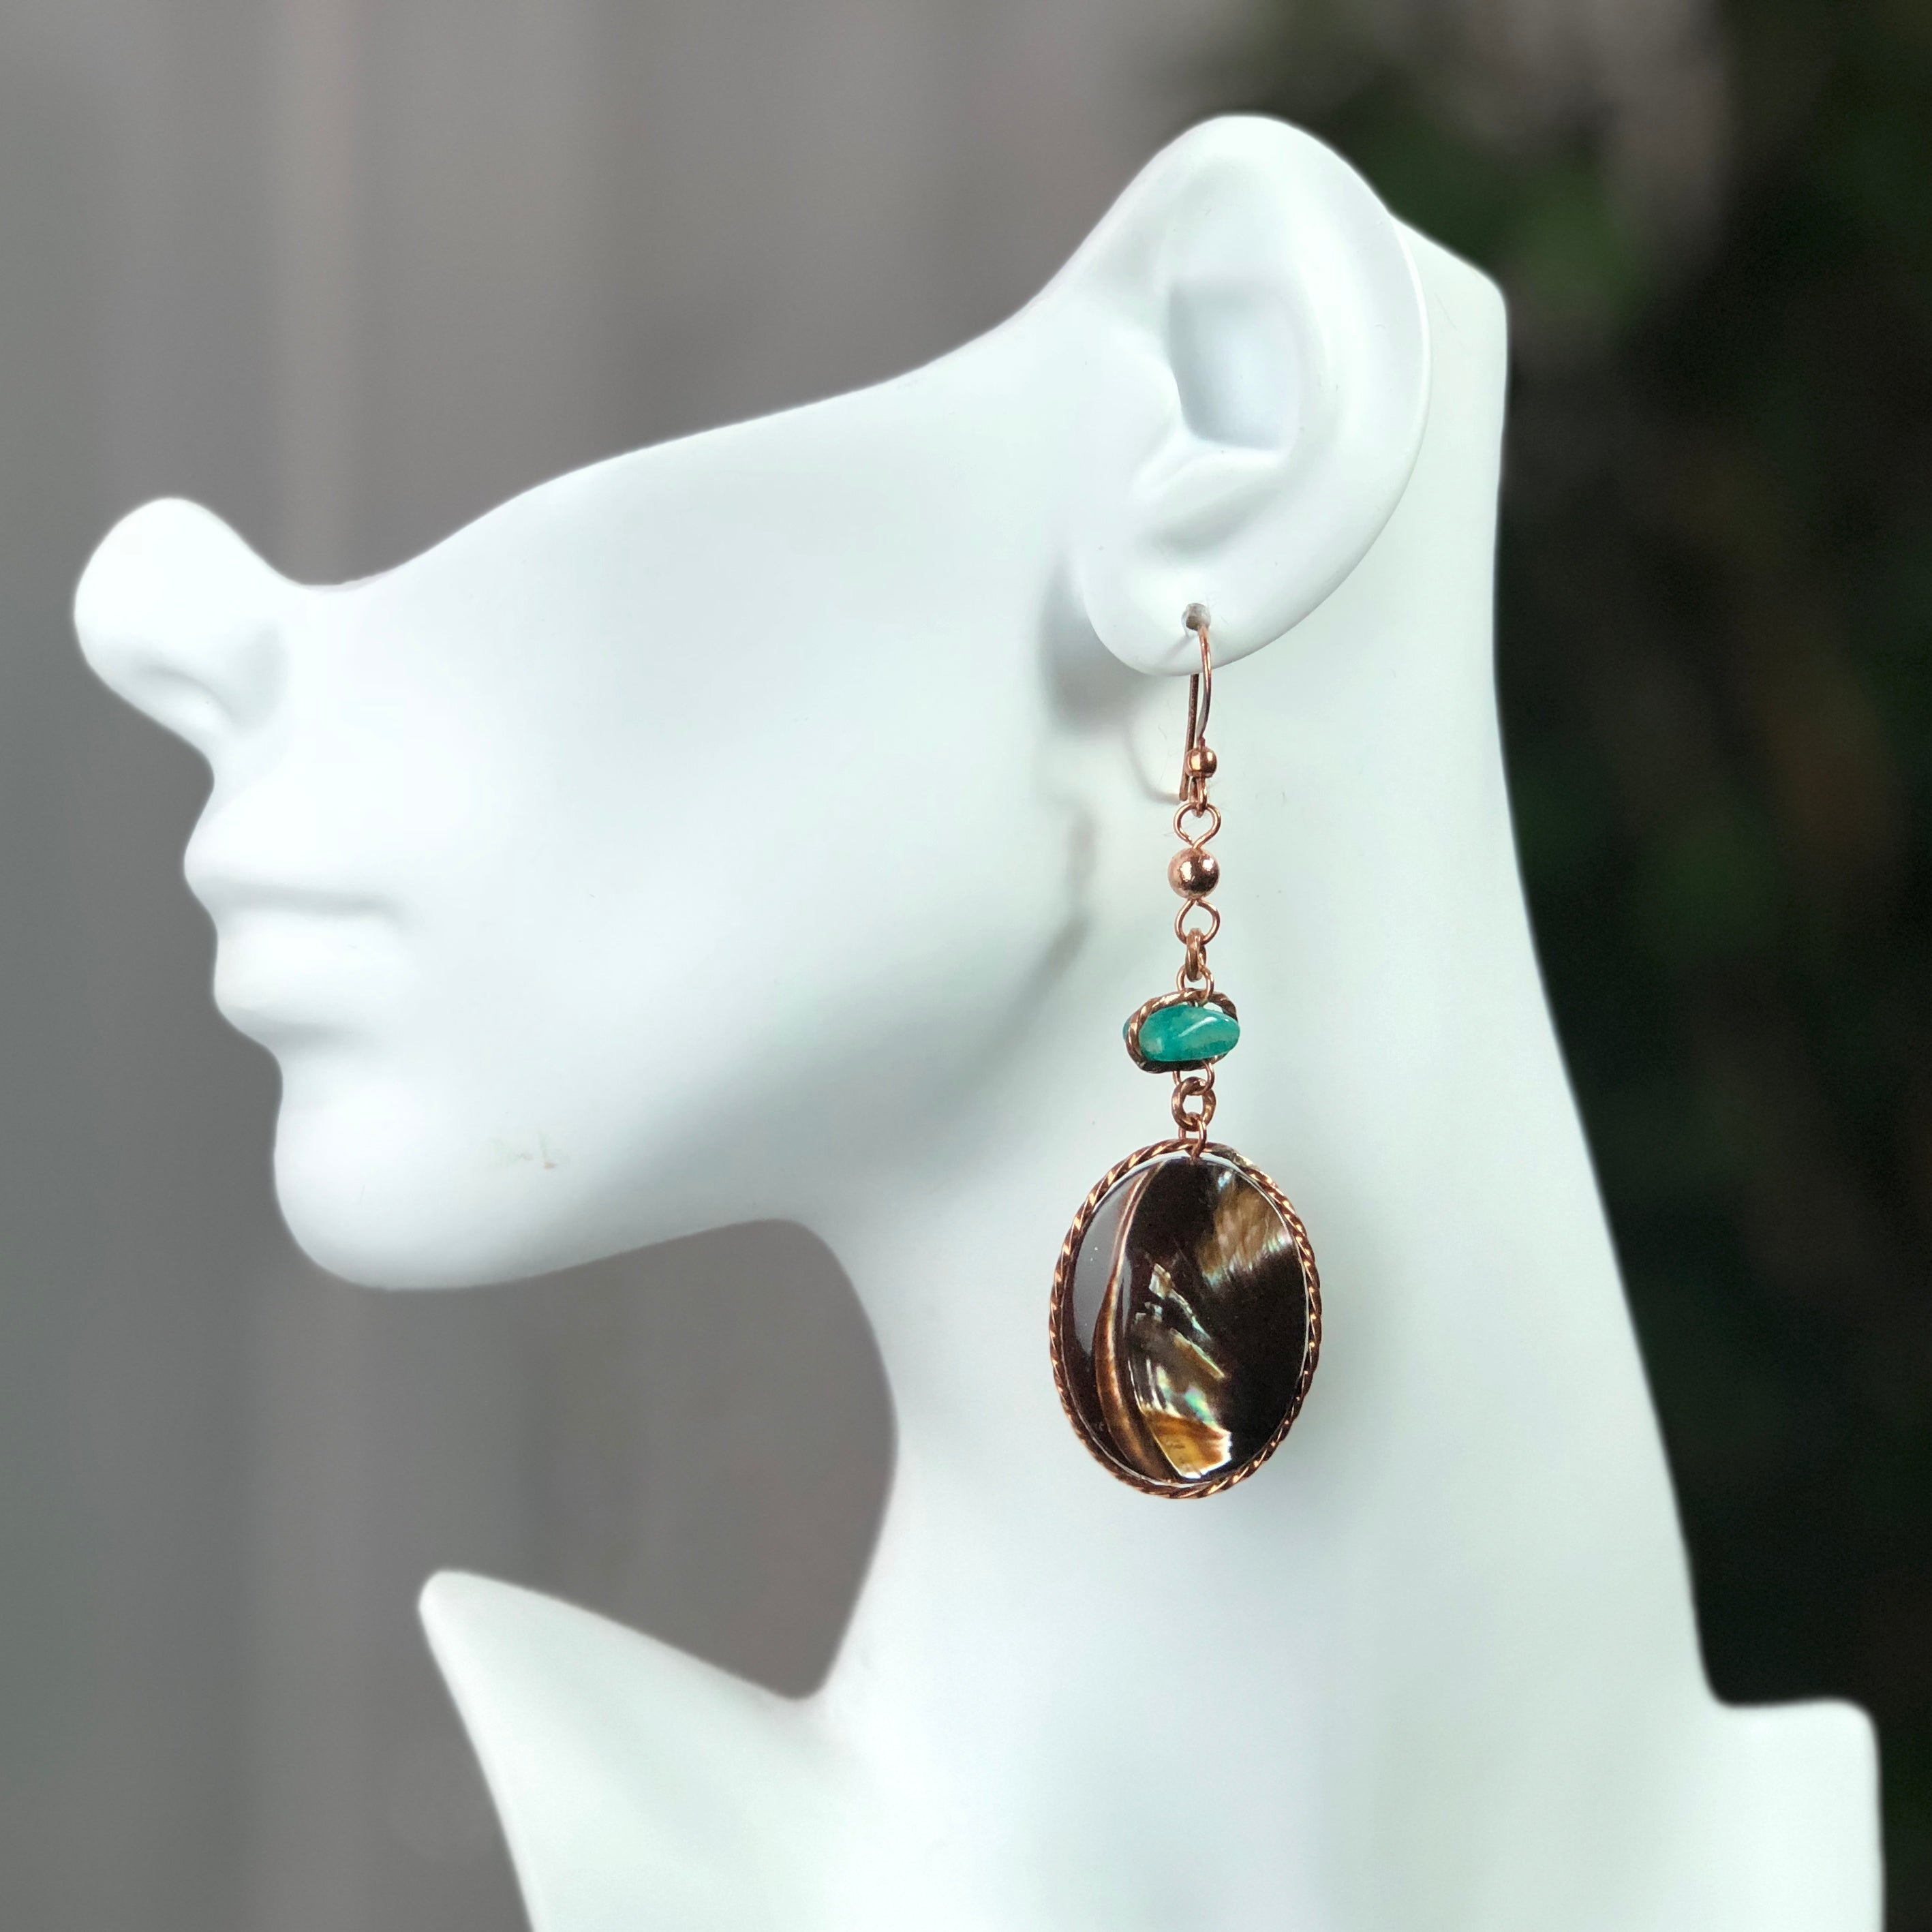 Borealis Earrings